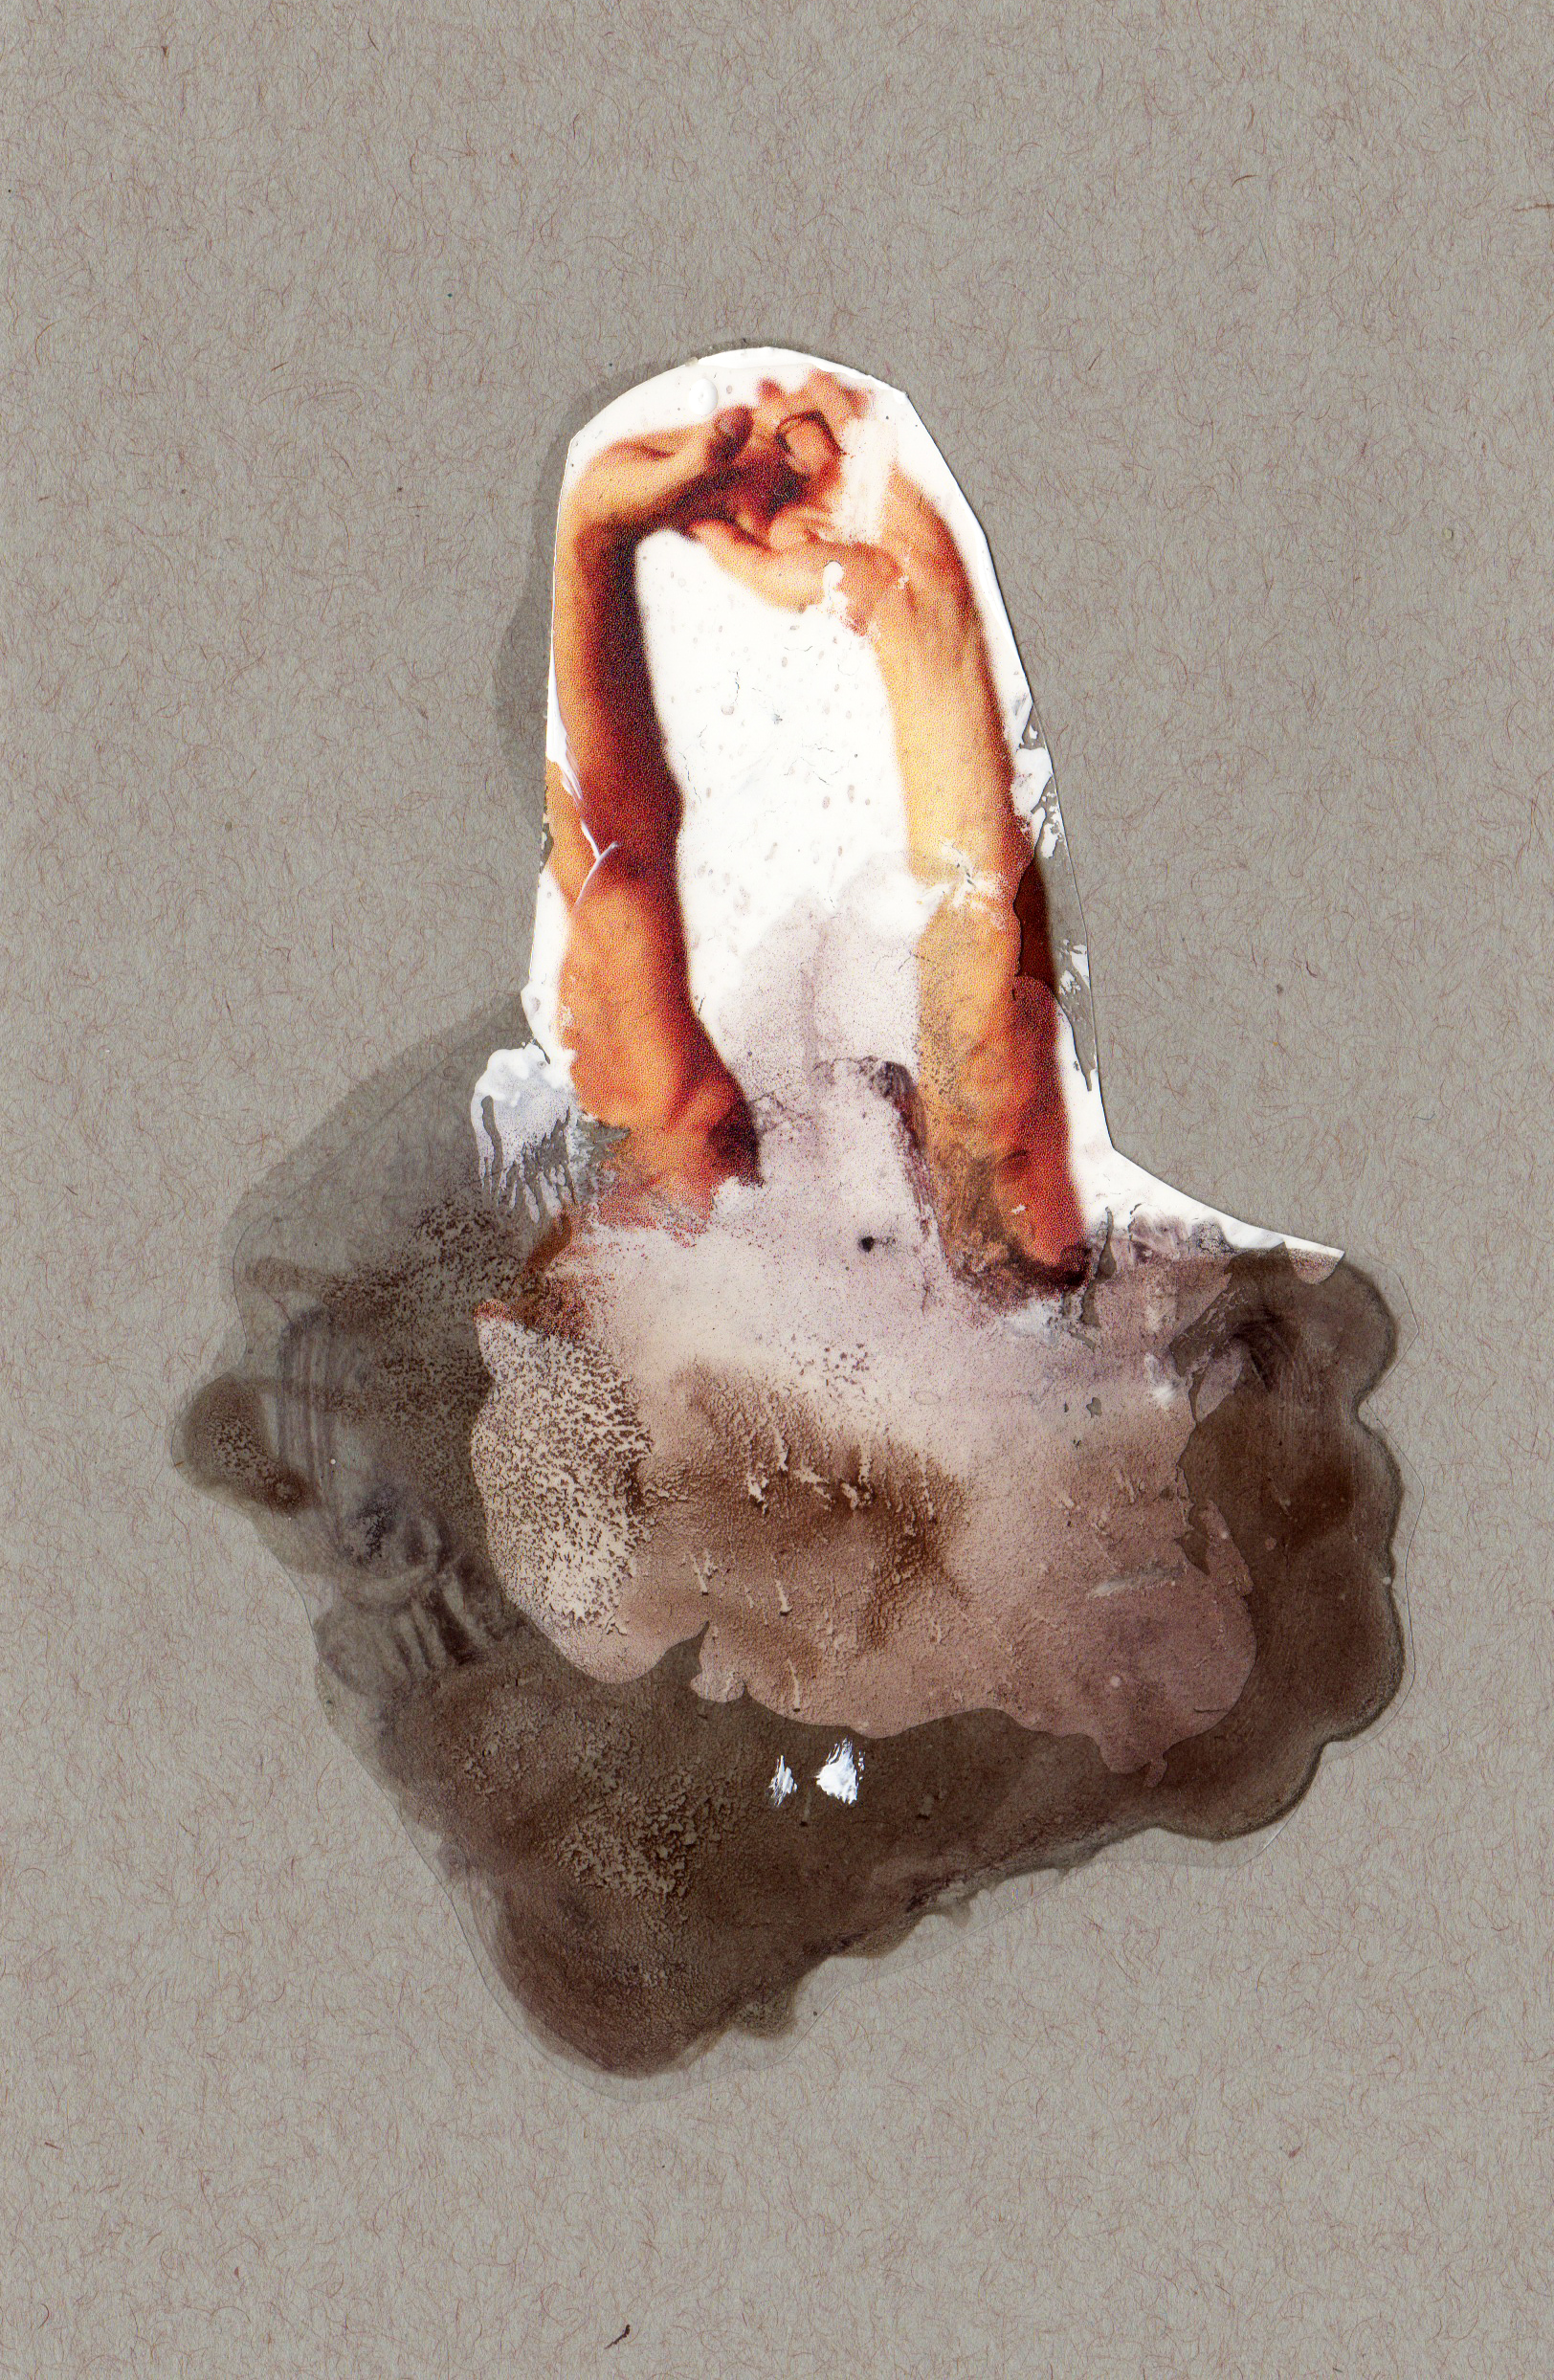 Prodigal Son, 2014, paint transparency archival ink and paper, 8.5x5.5 inches